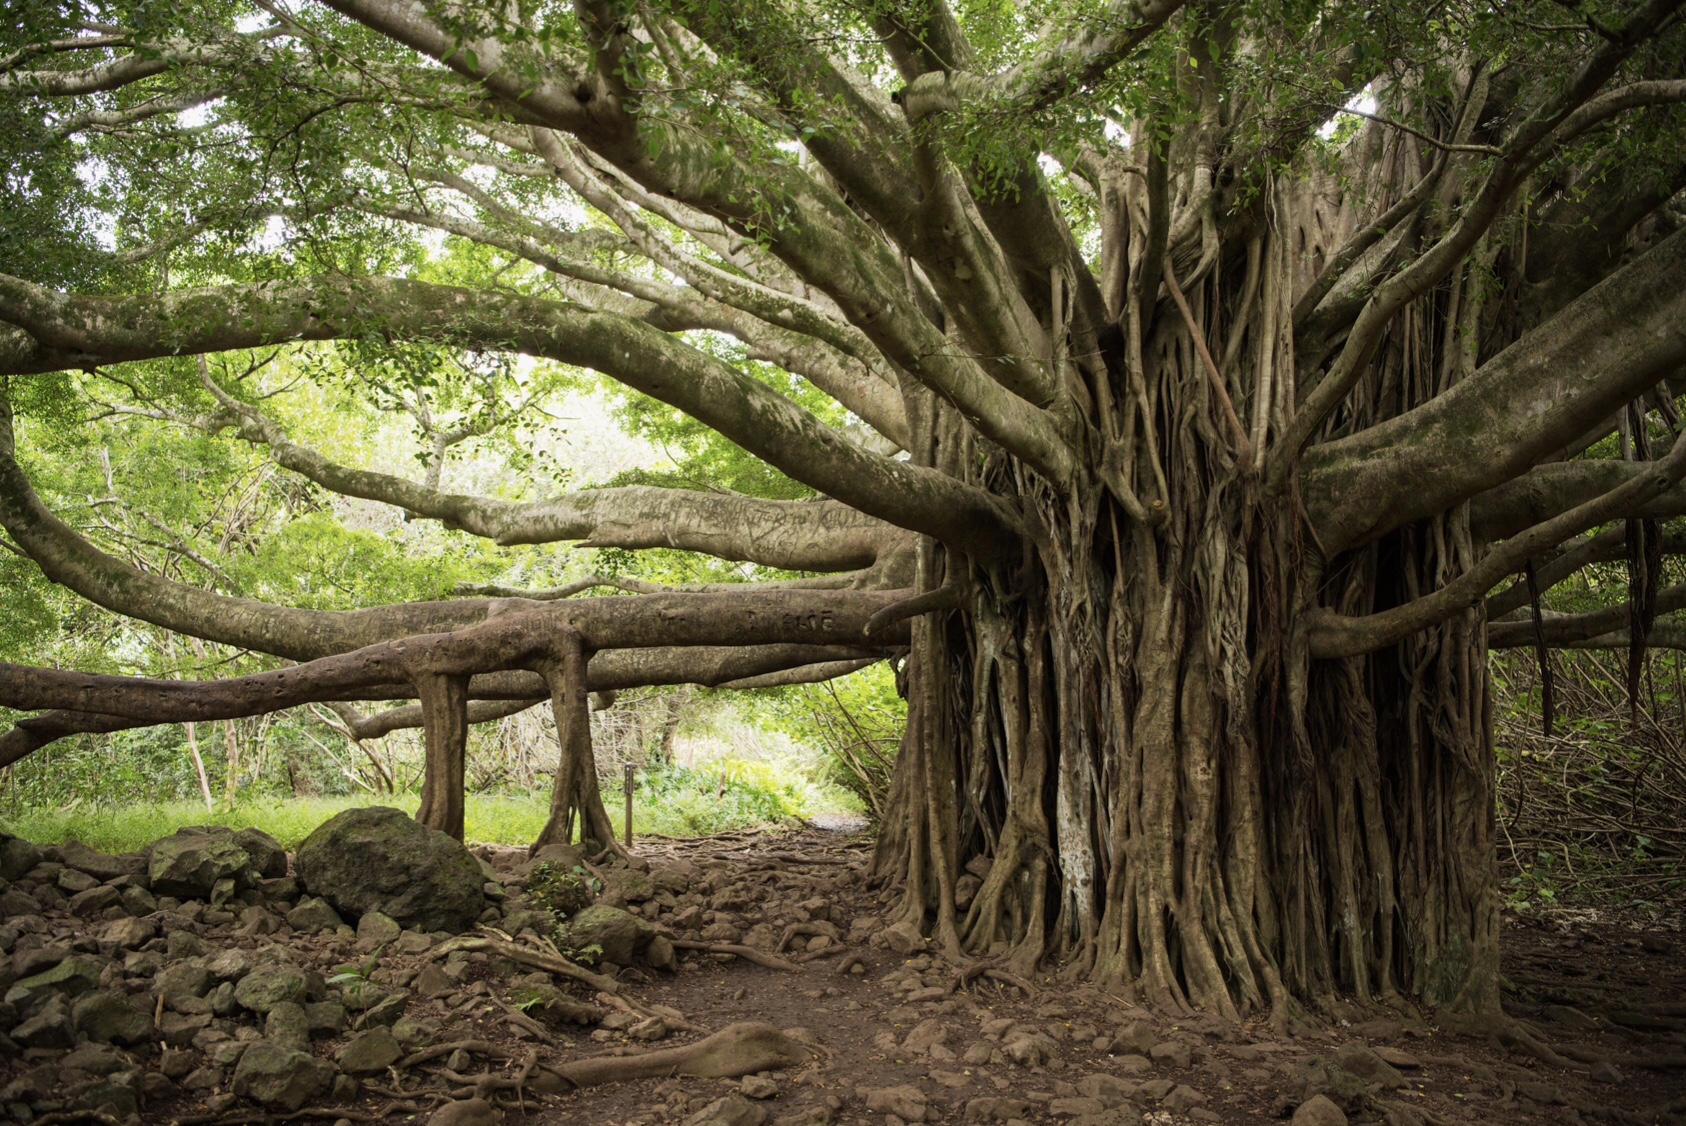 In Maui, you'll find the largest banyan tree in the United States